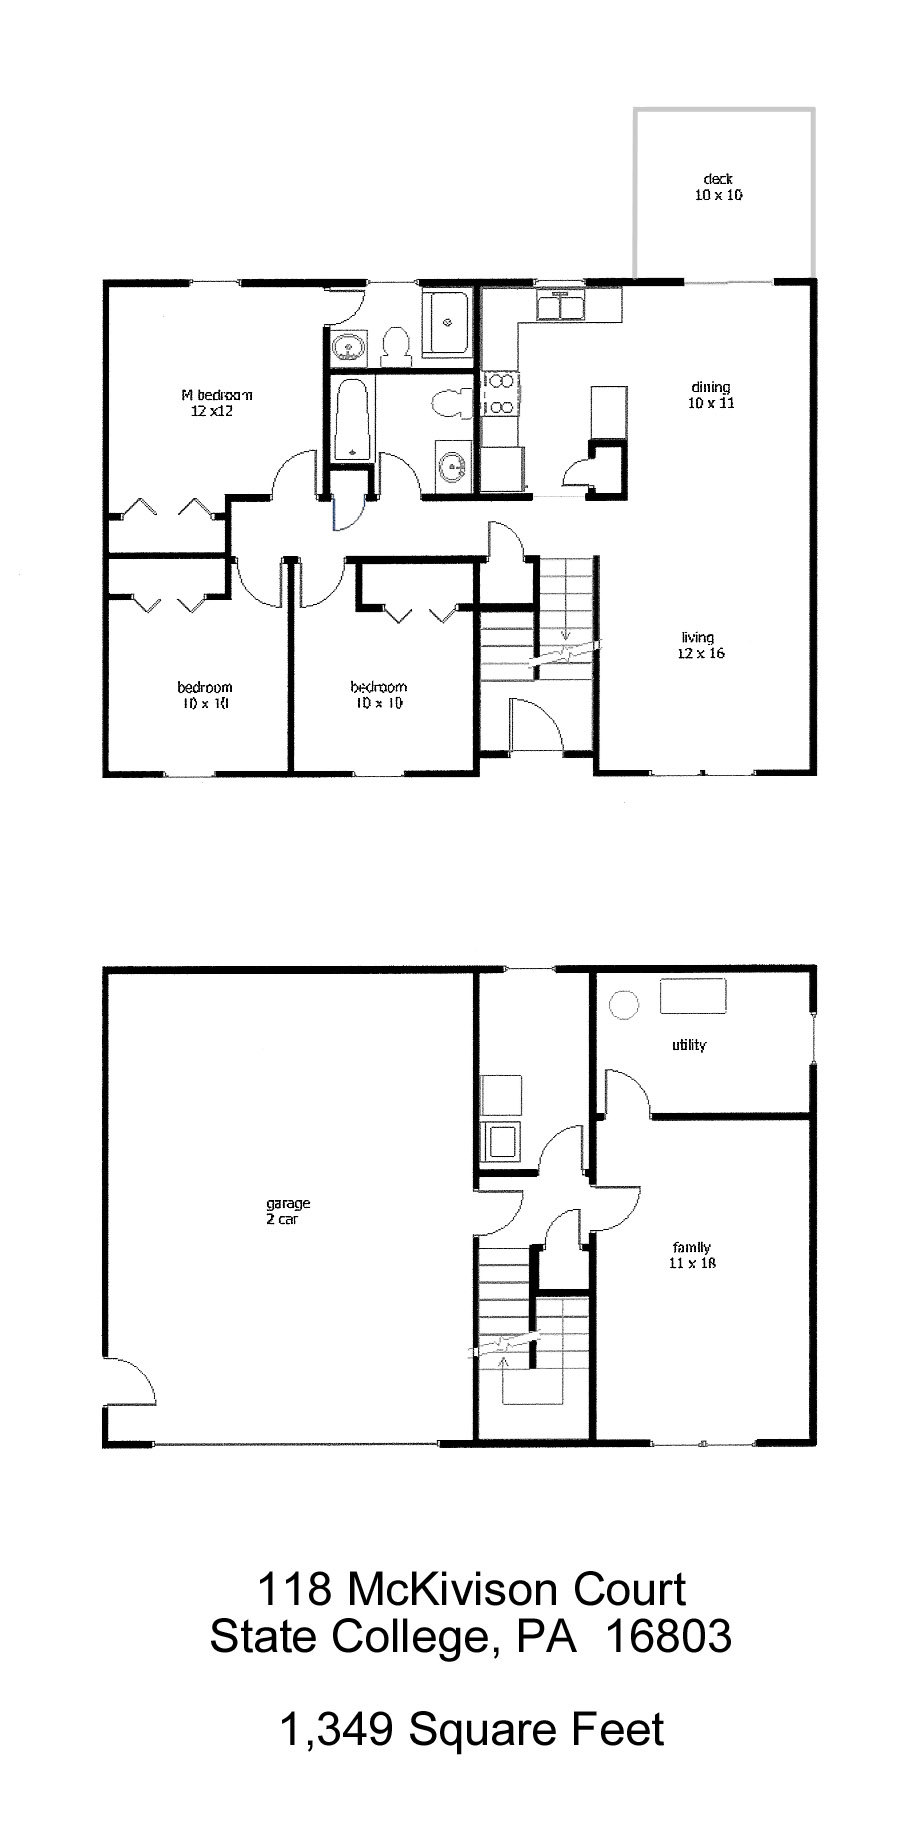 118 McKivison Court Floor Plan